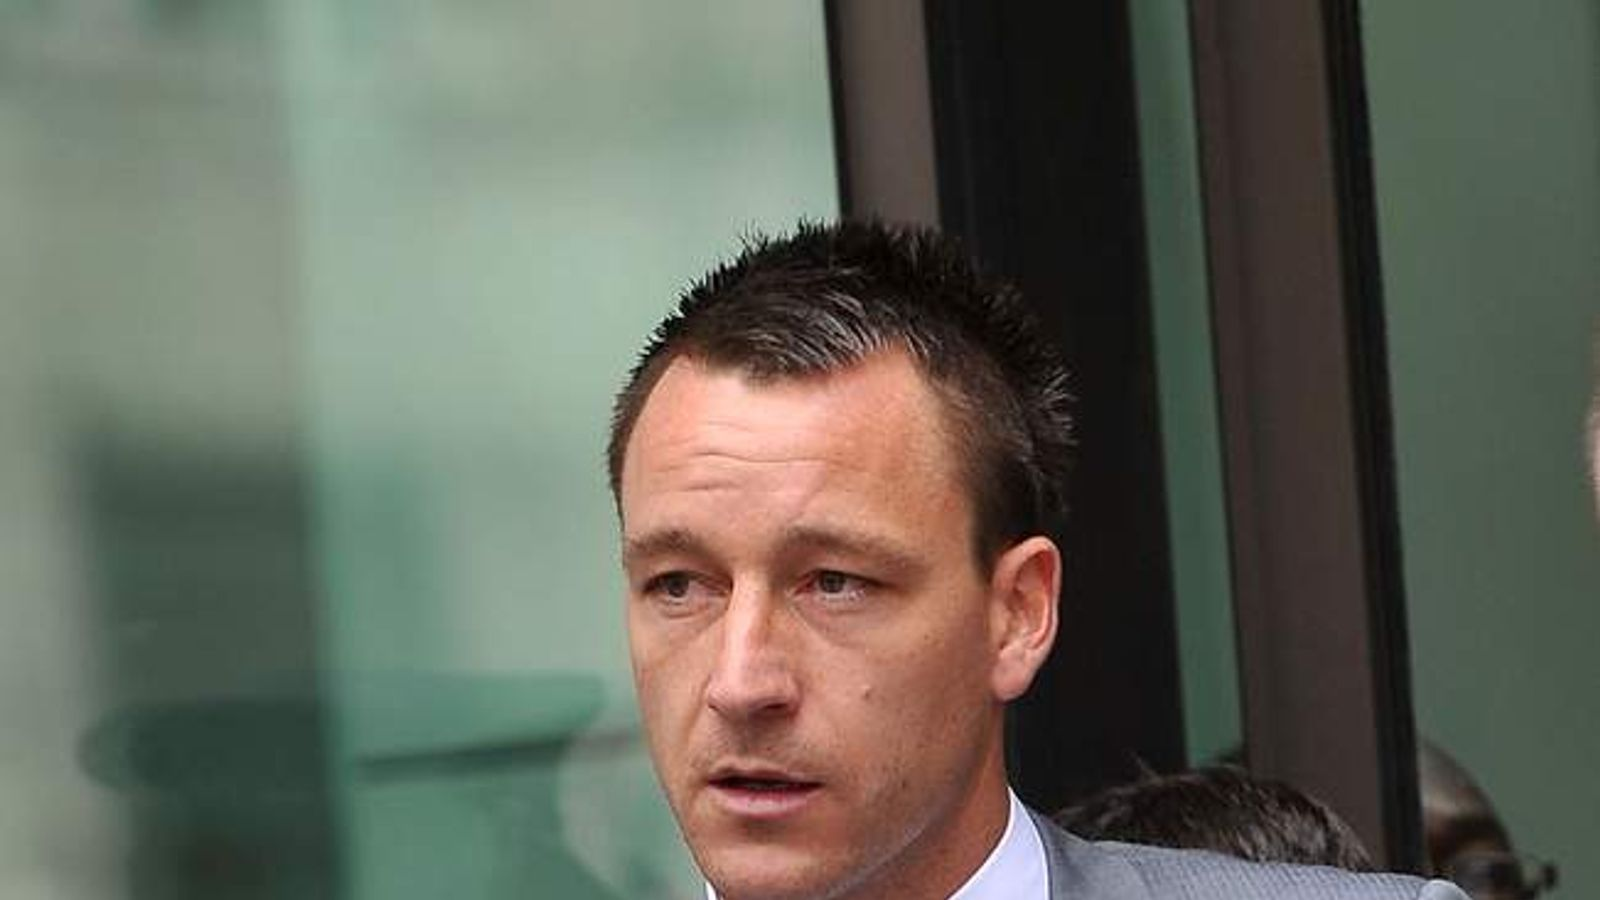 John Terry leaves court after a not guilty verdict was reached of his alleged racial abuse trial on July 13, 2012 in London